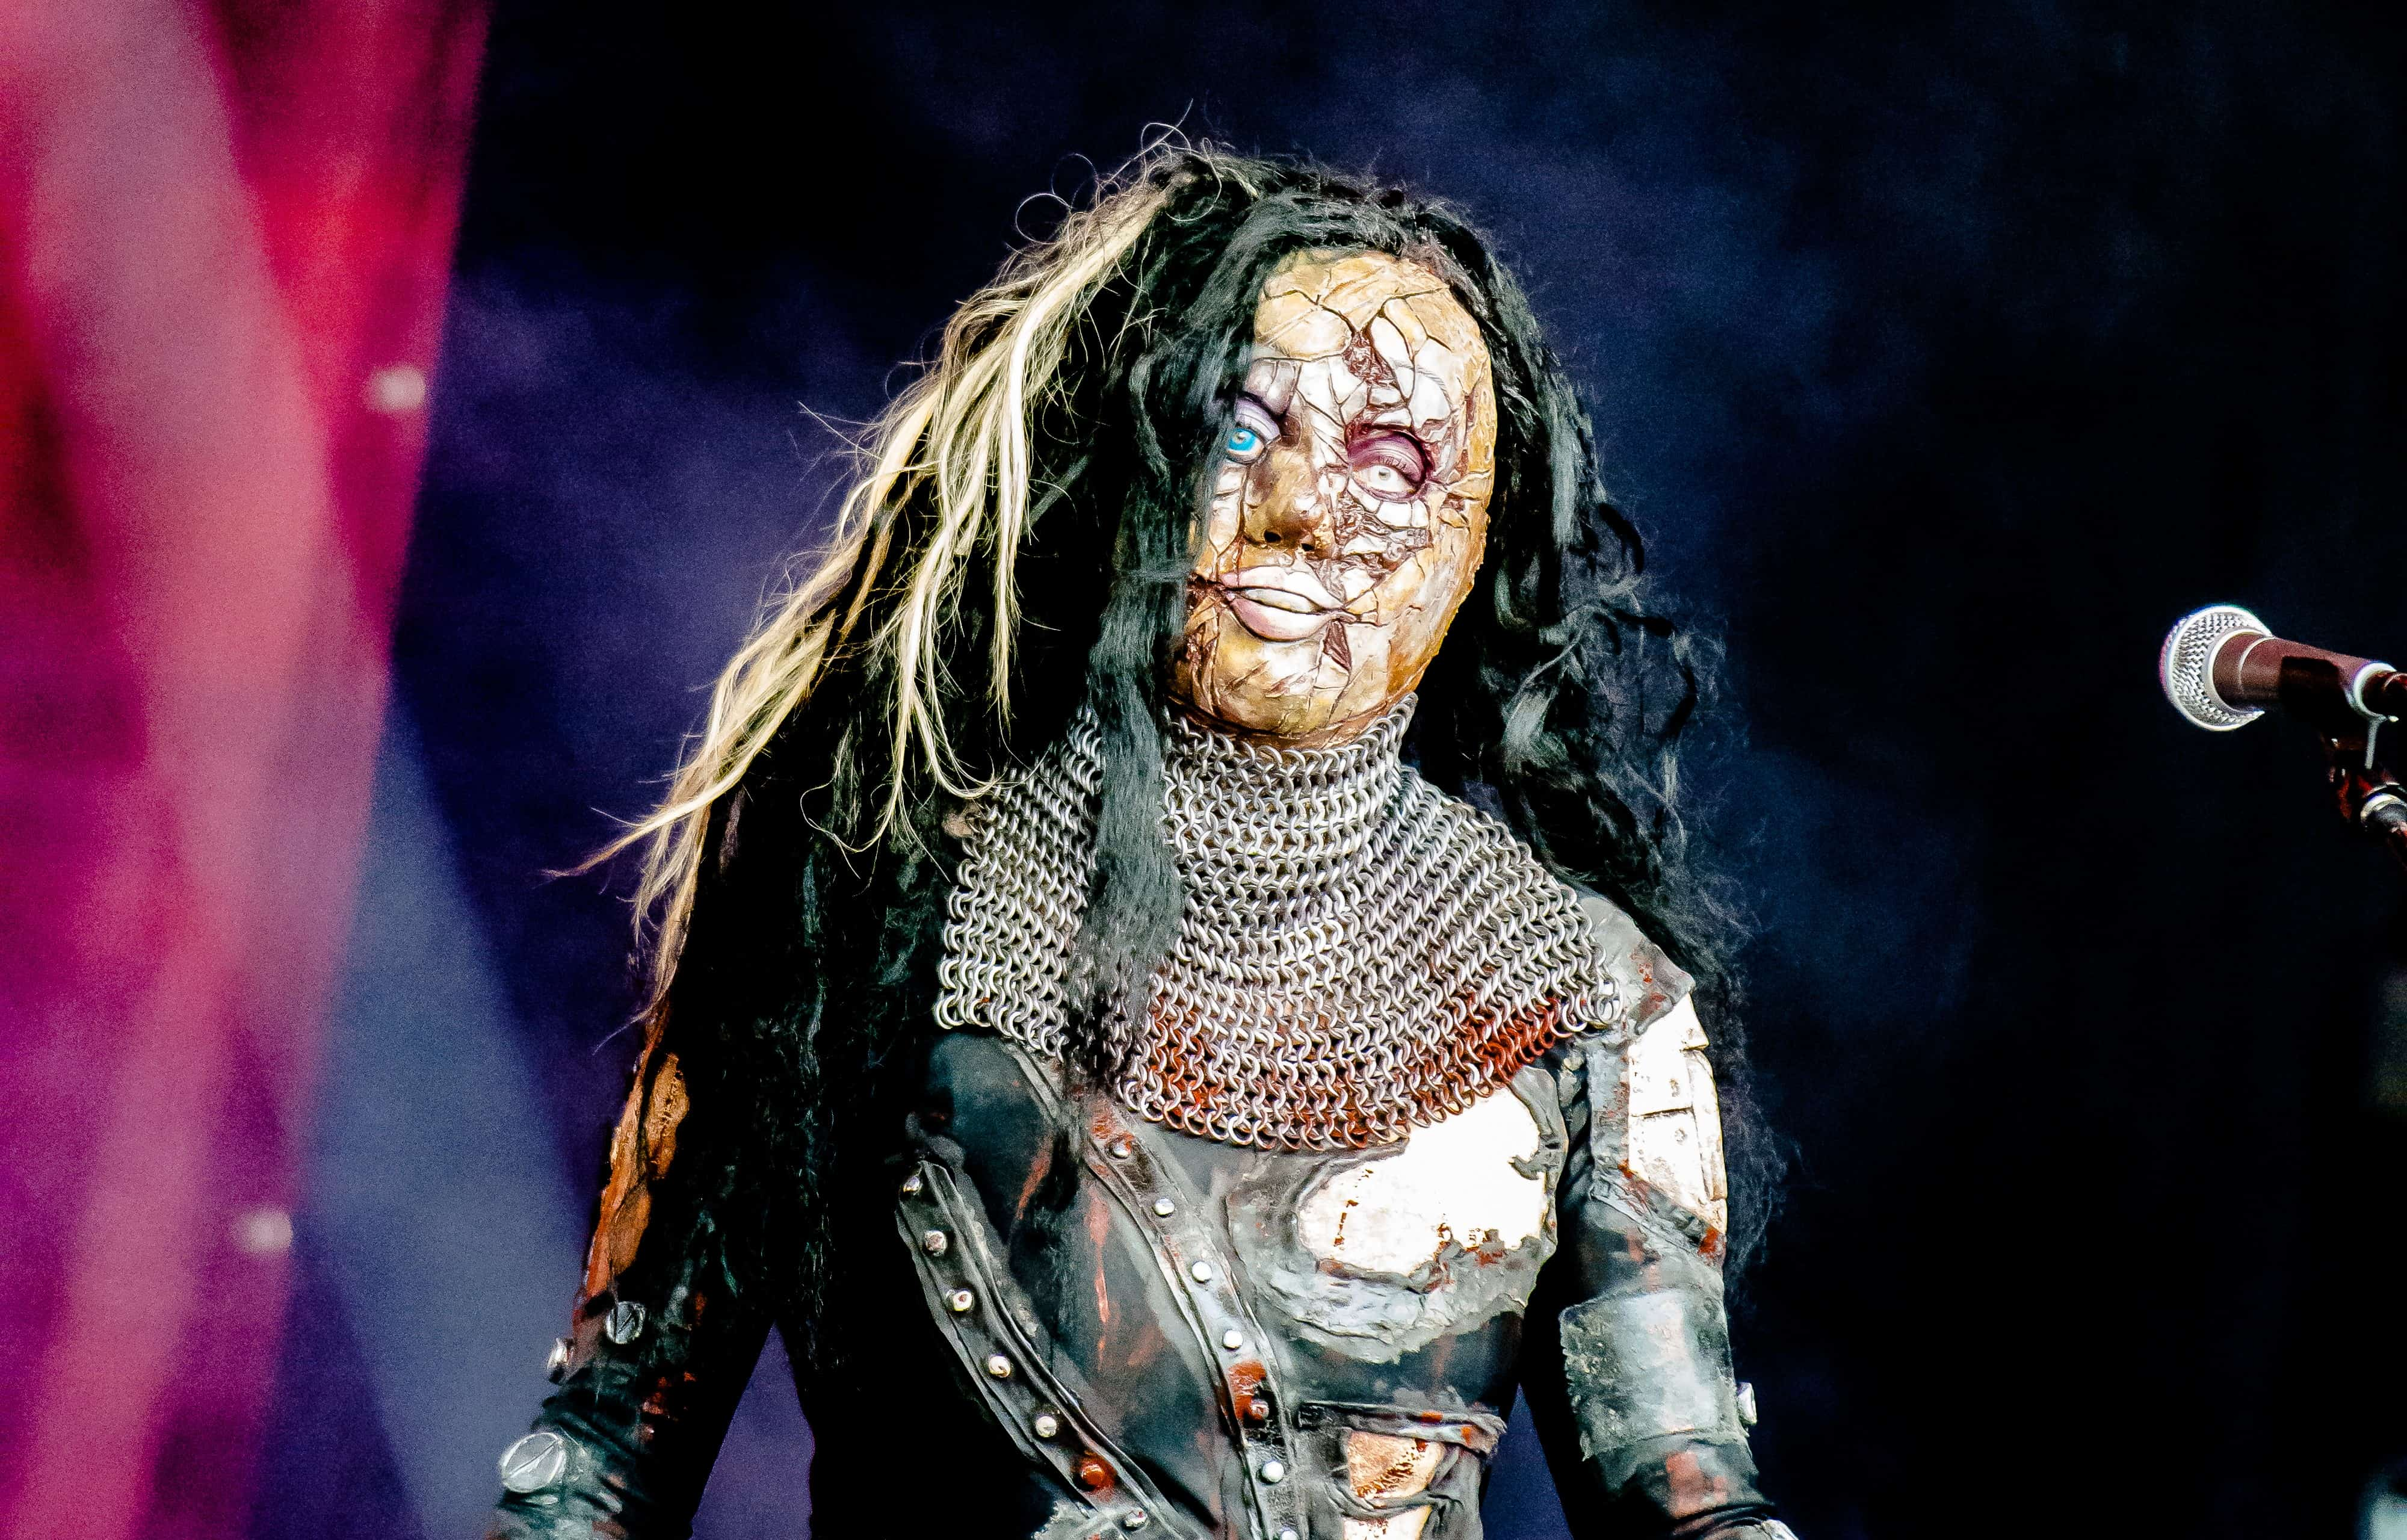 Interview Hella Of Lordi Yesterdazenews Com Make Your Own Beautiful  HD Wallpapers, Images Over 1000+ [ralydesign.ml]